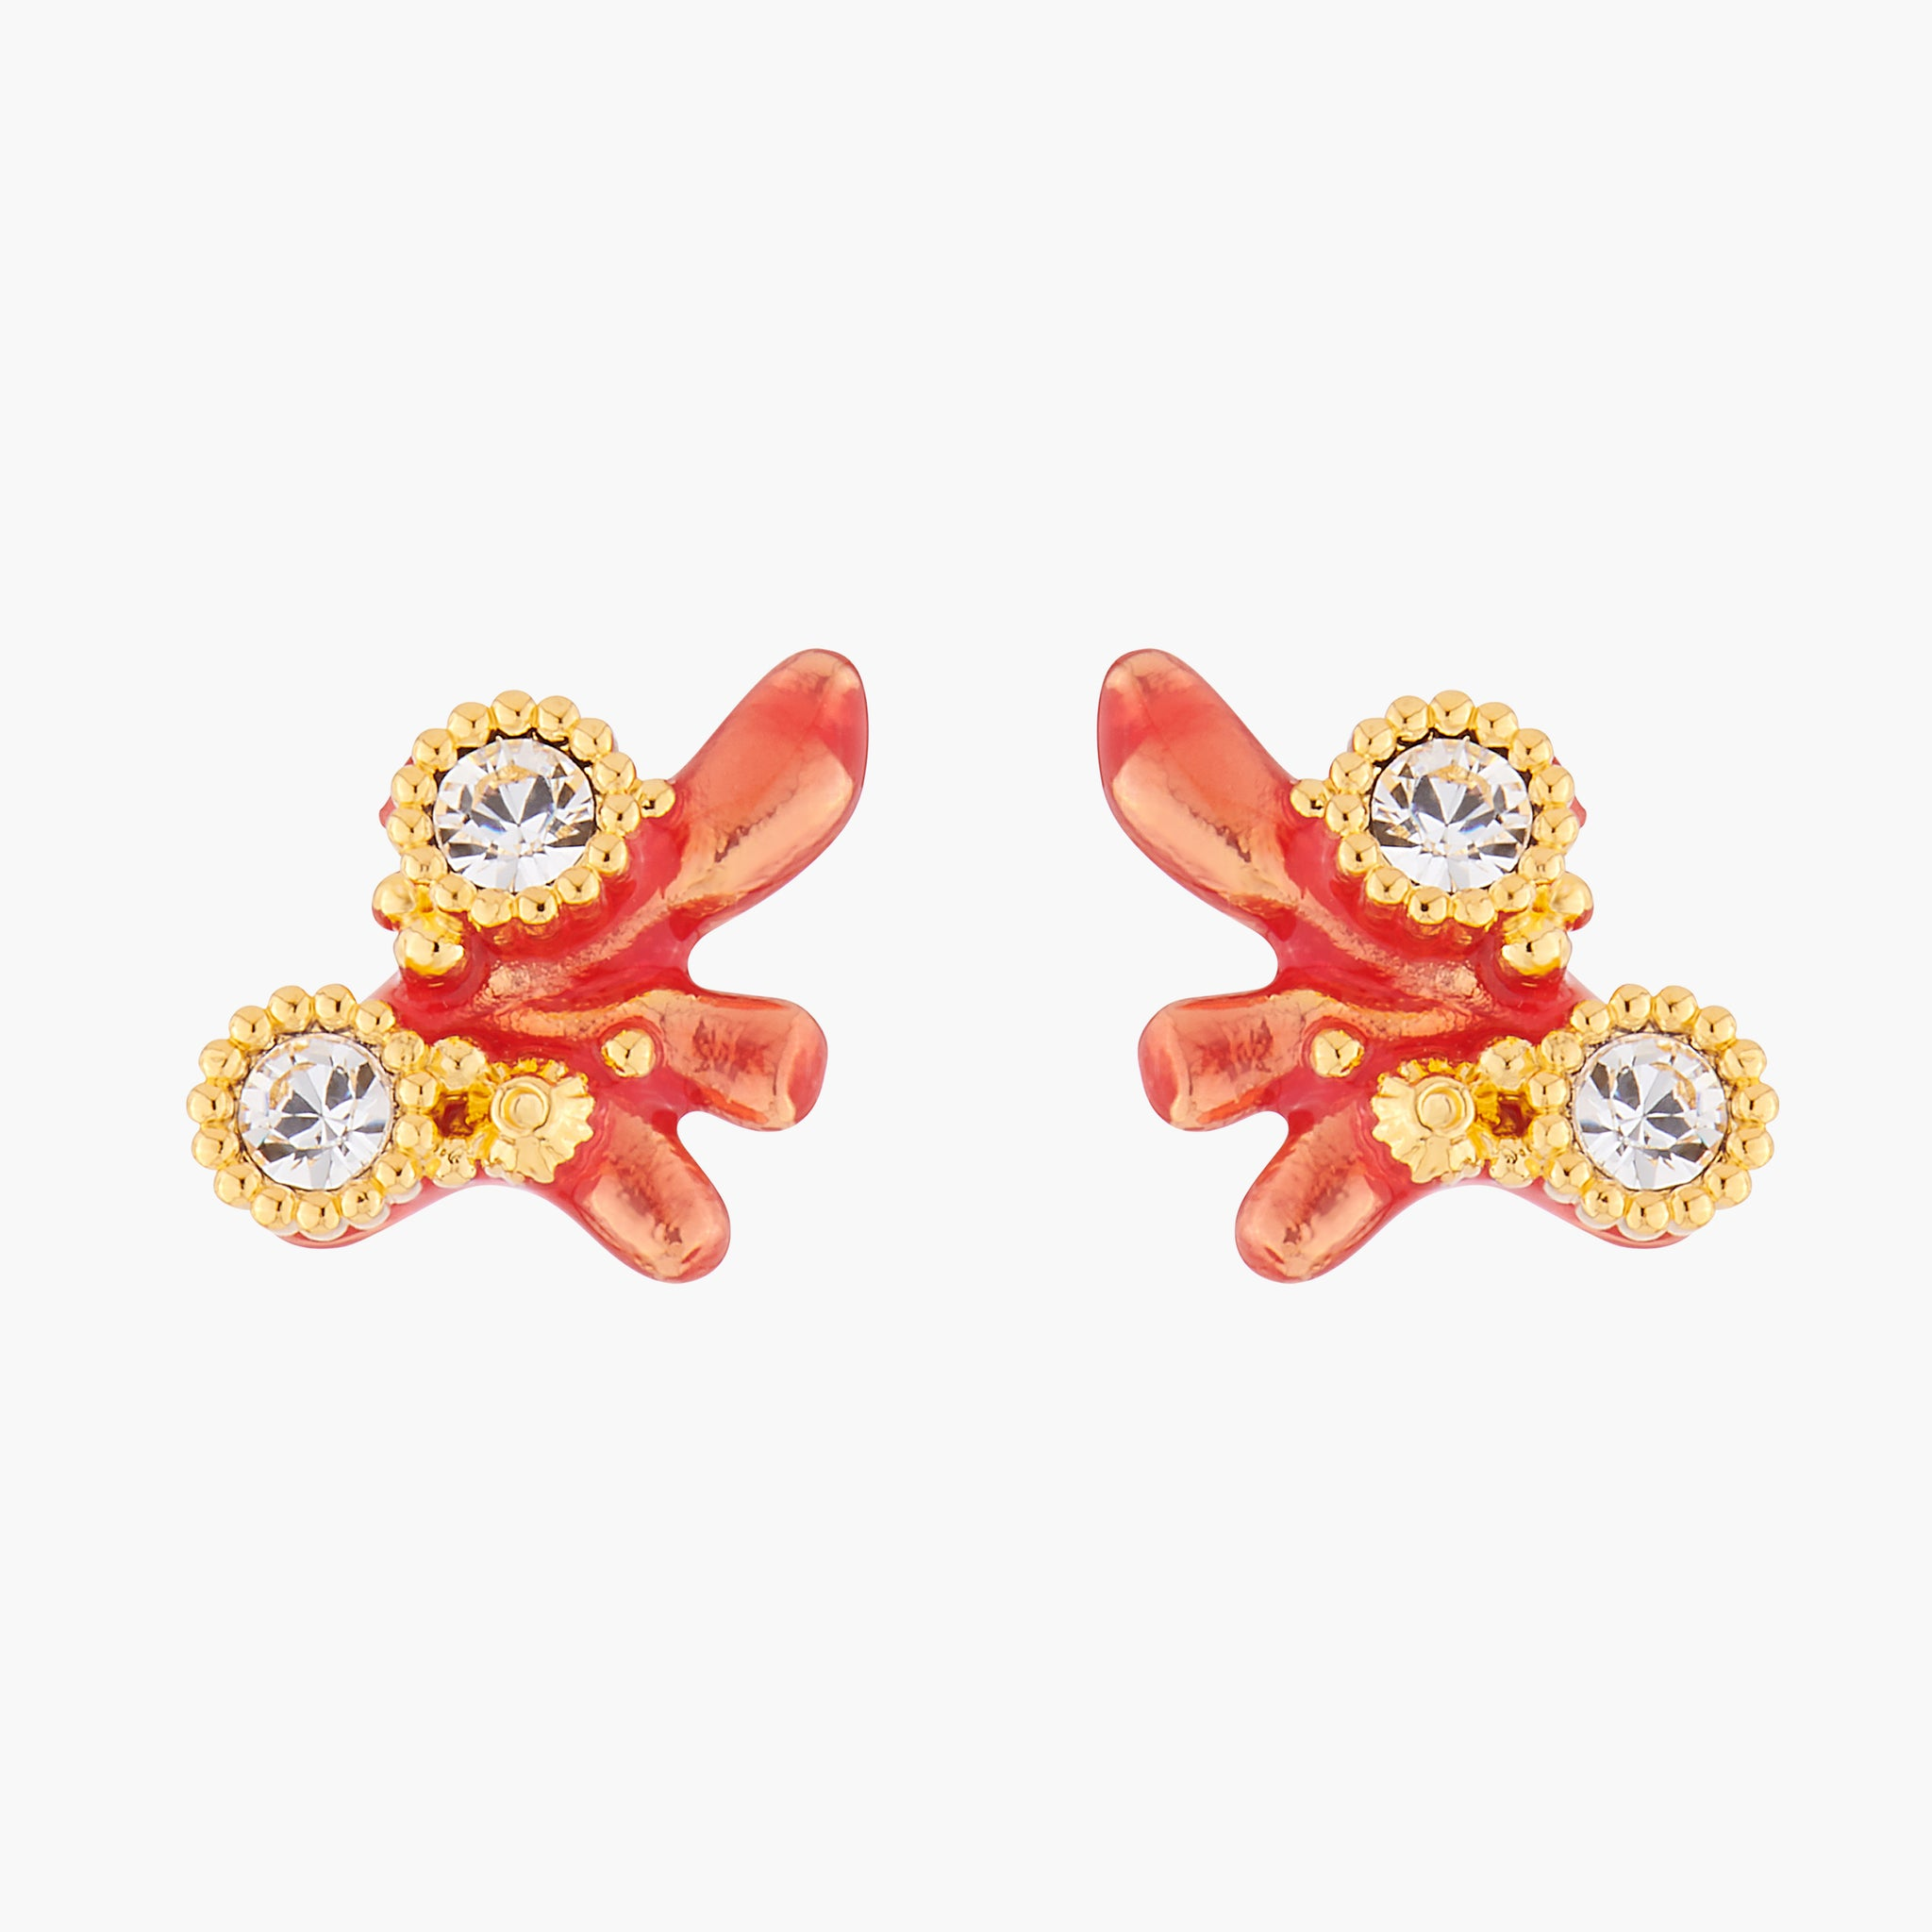 Red Corals and Crystals Stud Earrings